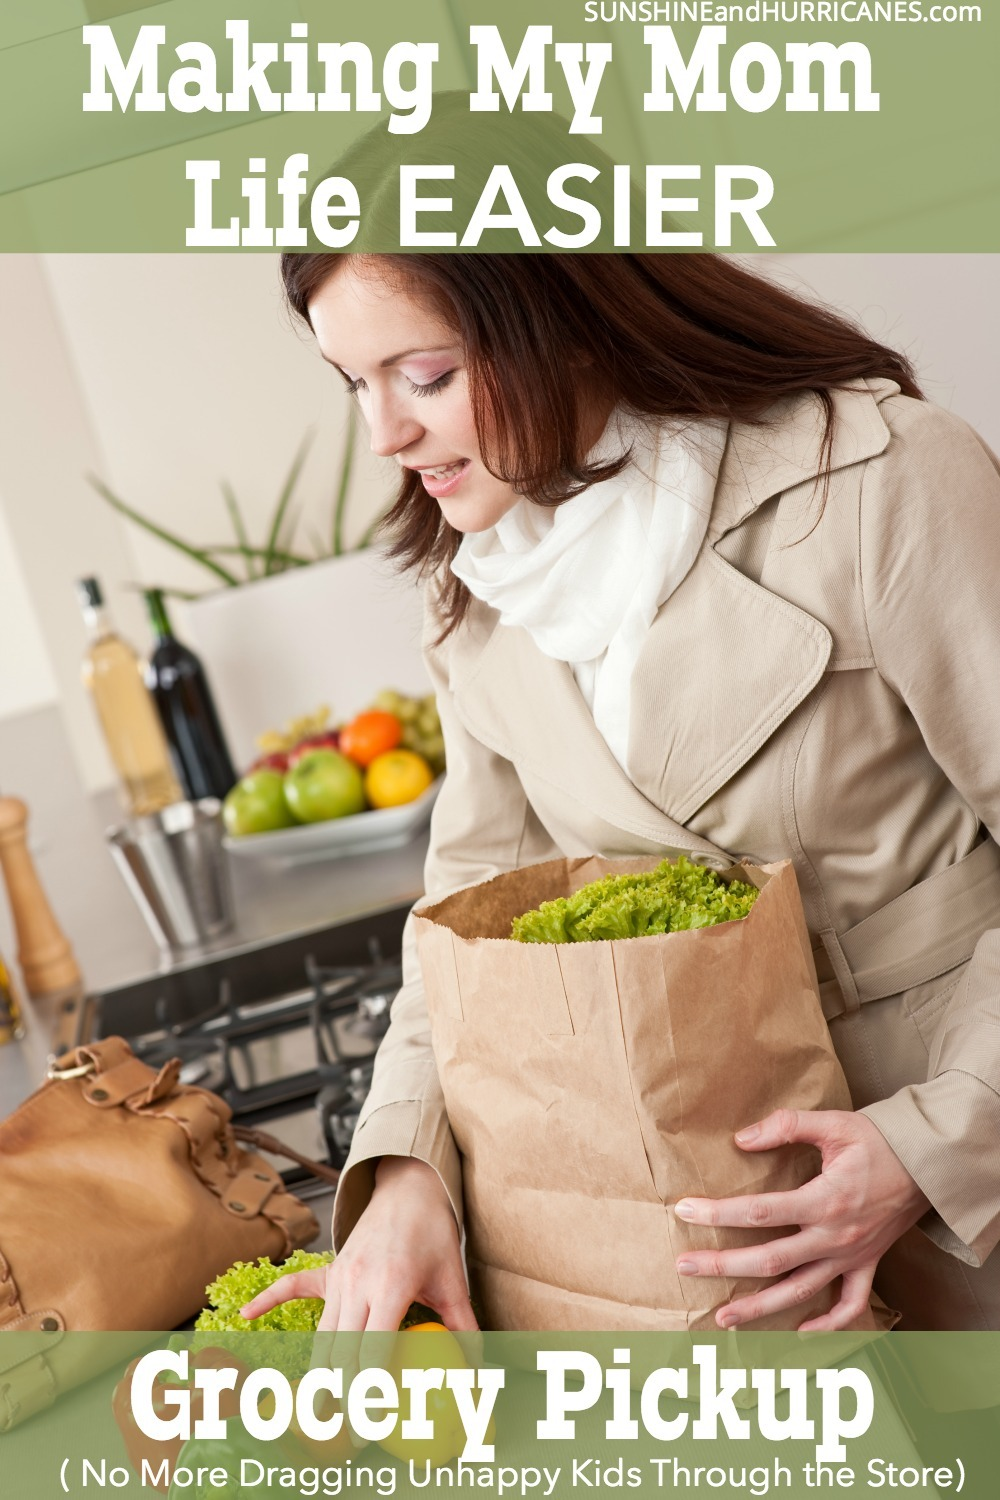 Do you feel like you spend your life at the grocery store? Is it only made worse by the face you often have to drag you're unhappy kids there with you? Being a mom is a tough job, but there are ways to make our lives easier. Grocery Pickup services are the latest and you'll be shocked by what a difference it makes. Learn more. SunshineandHurricanes.com